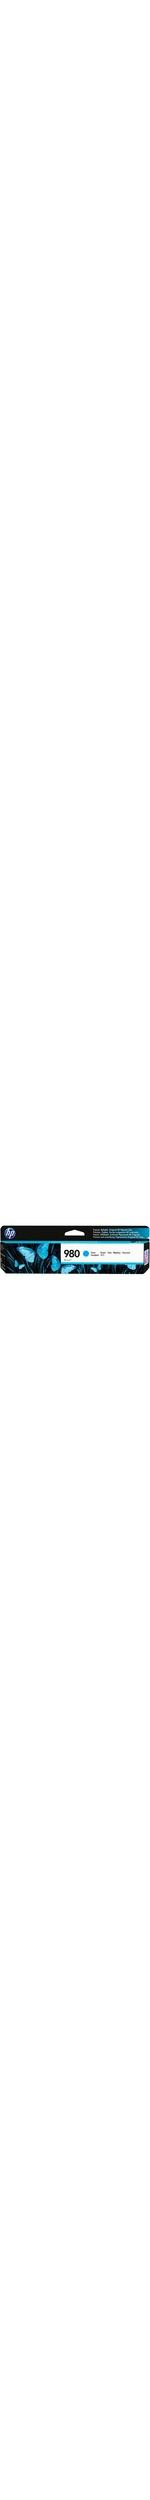 HP 980 Ink Cartridge - Cyan